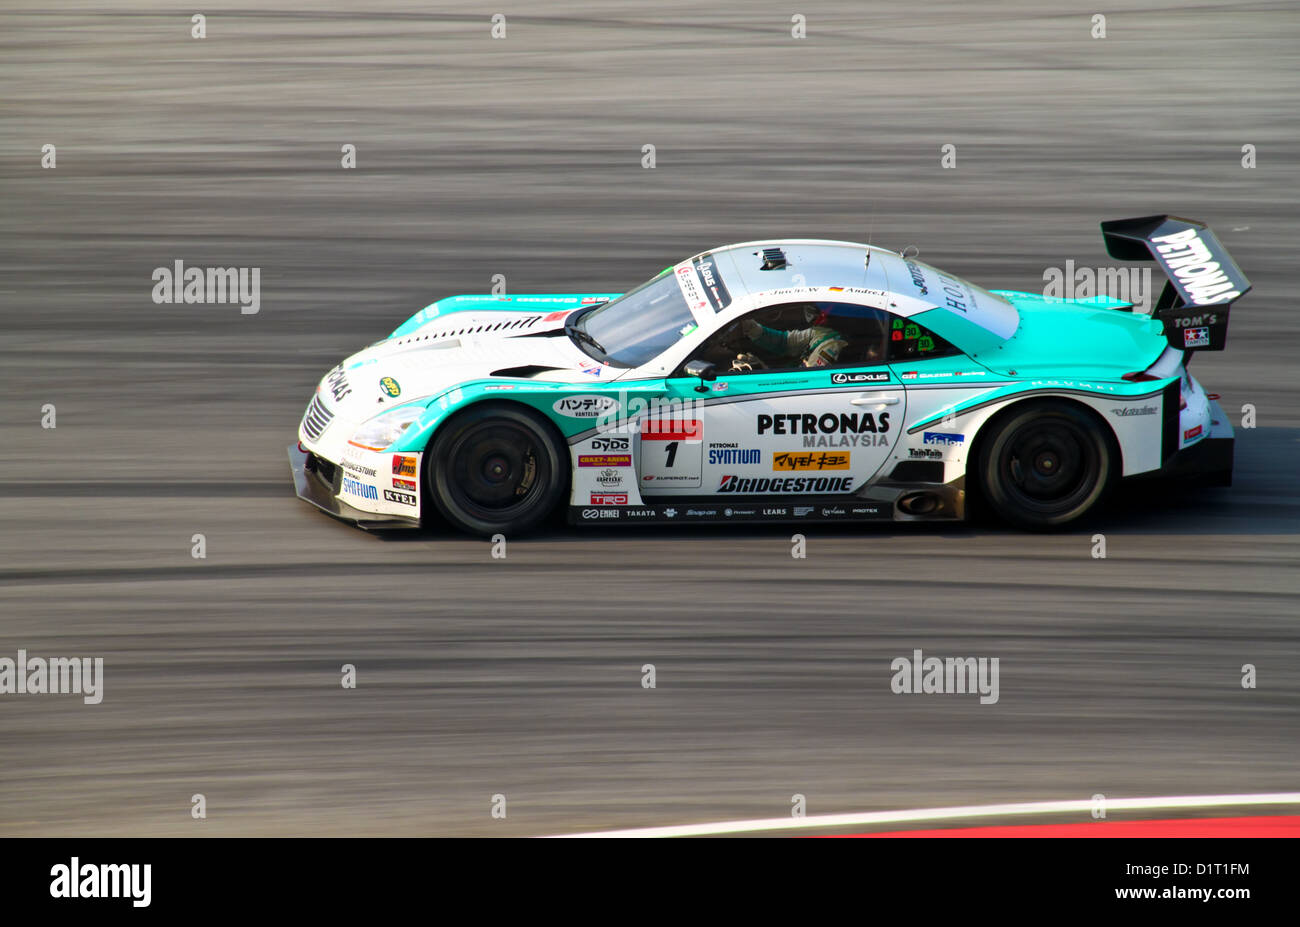 Petronas Lexus Car Competing At Super Gt Race On June 20 2010 In